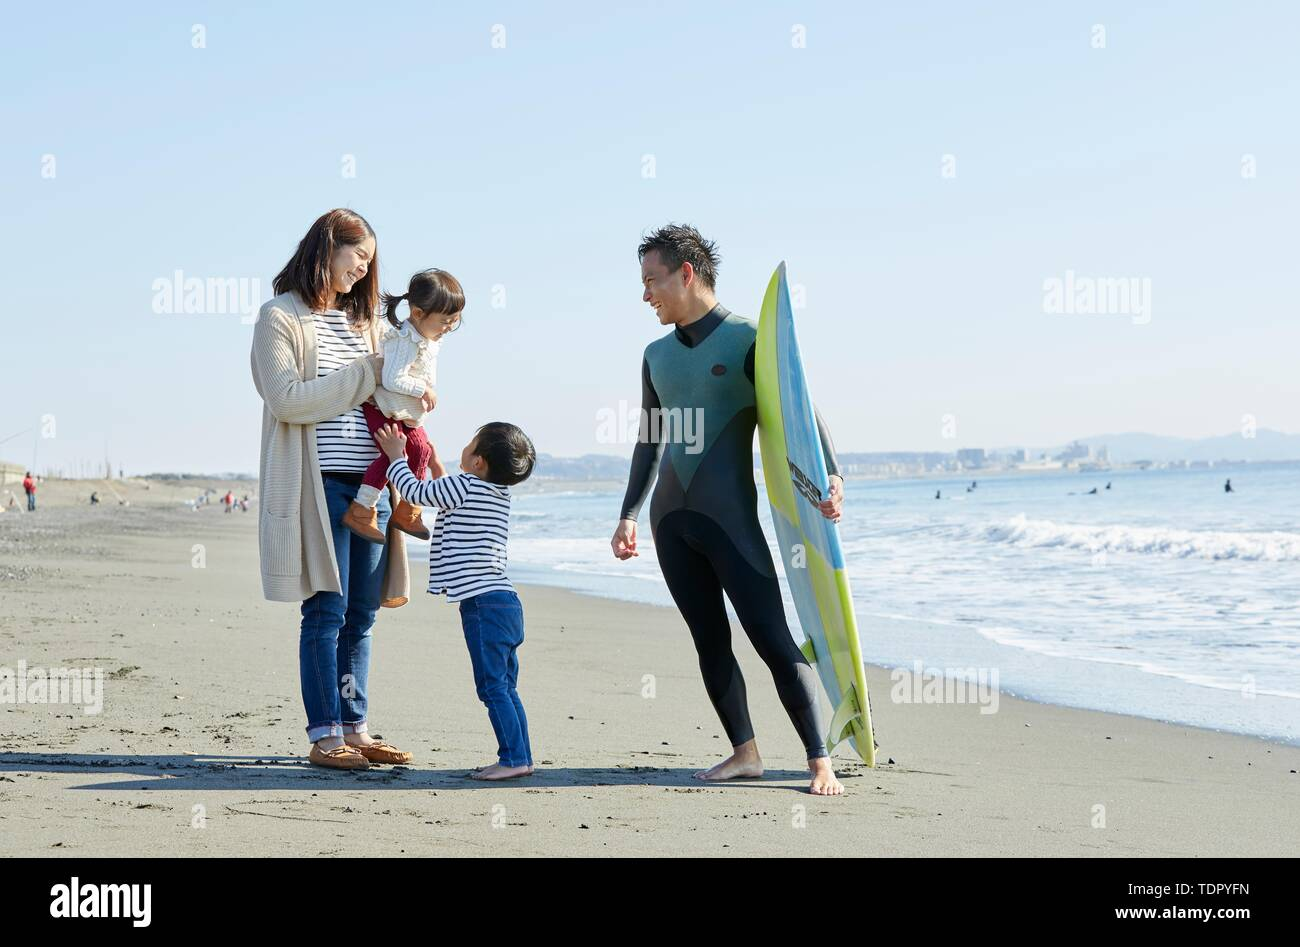 Japanese family at the beach - Stock Image